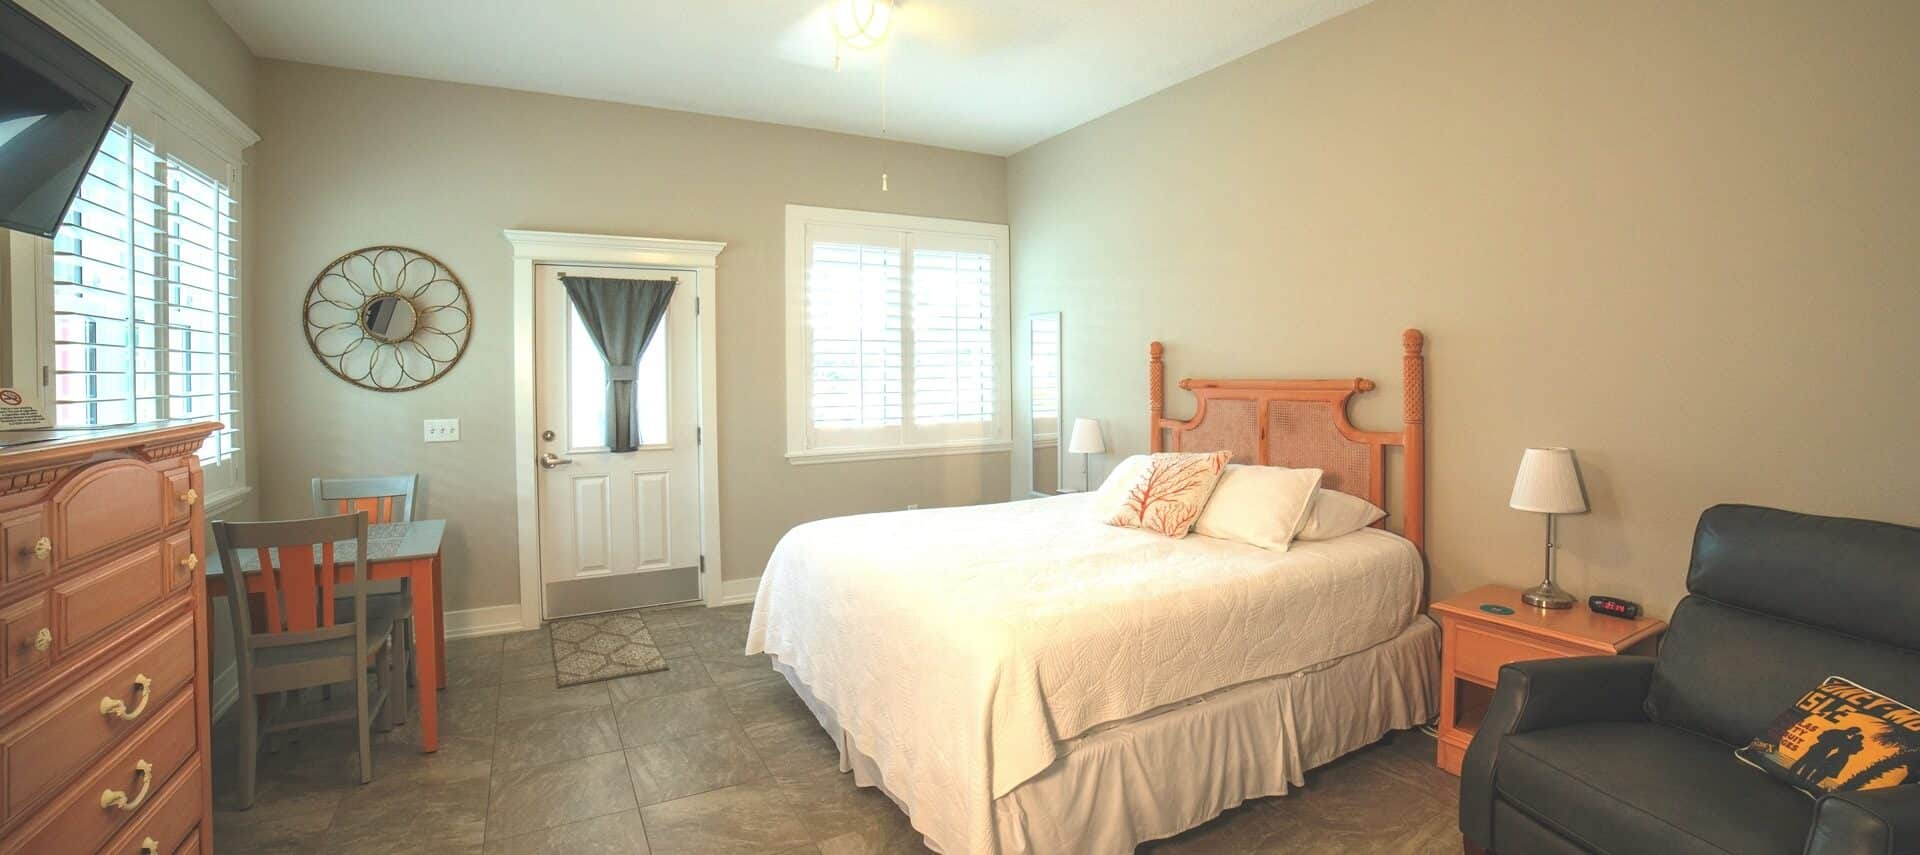 Bright and airy bedroomw ith a bed made up in white, coral -colored dresser, and TV on wall.